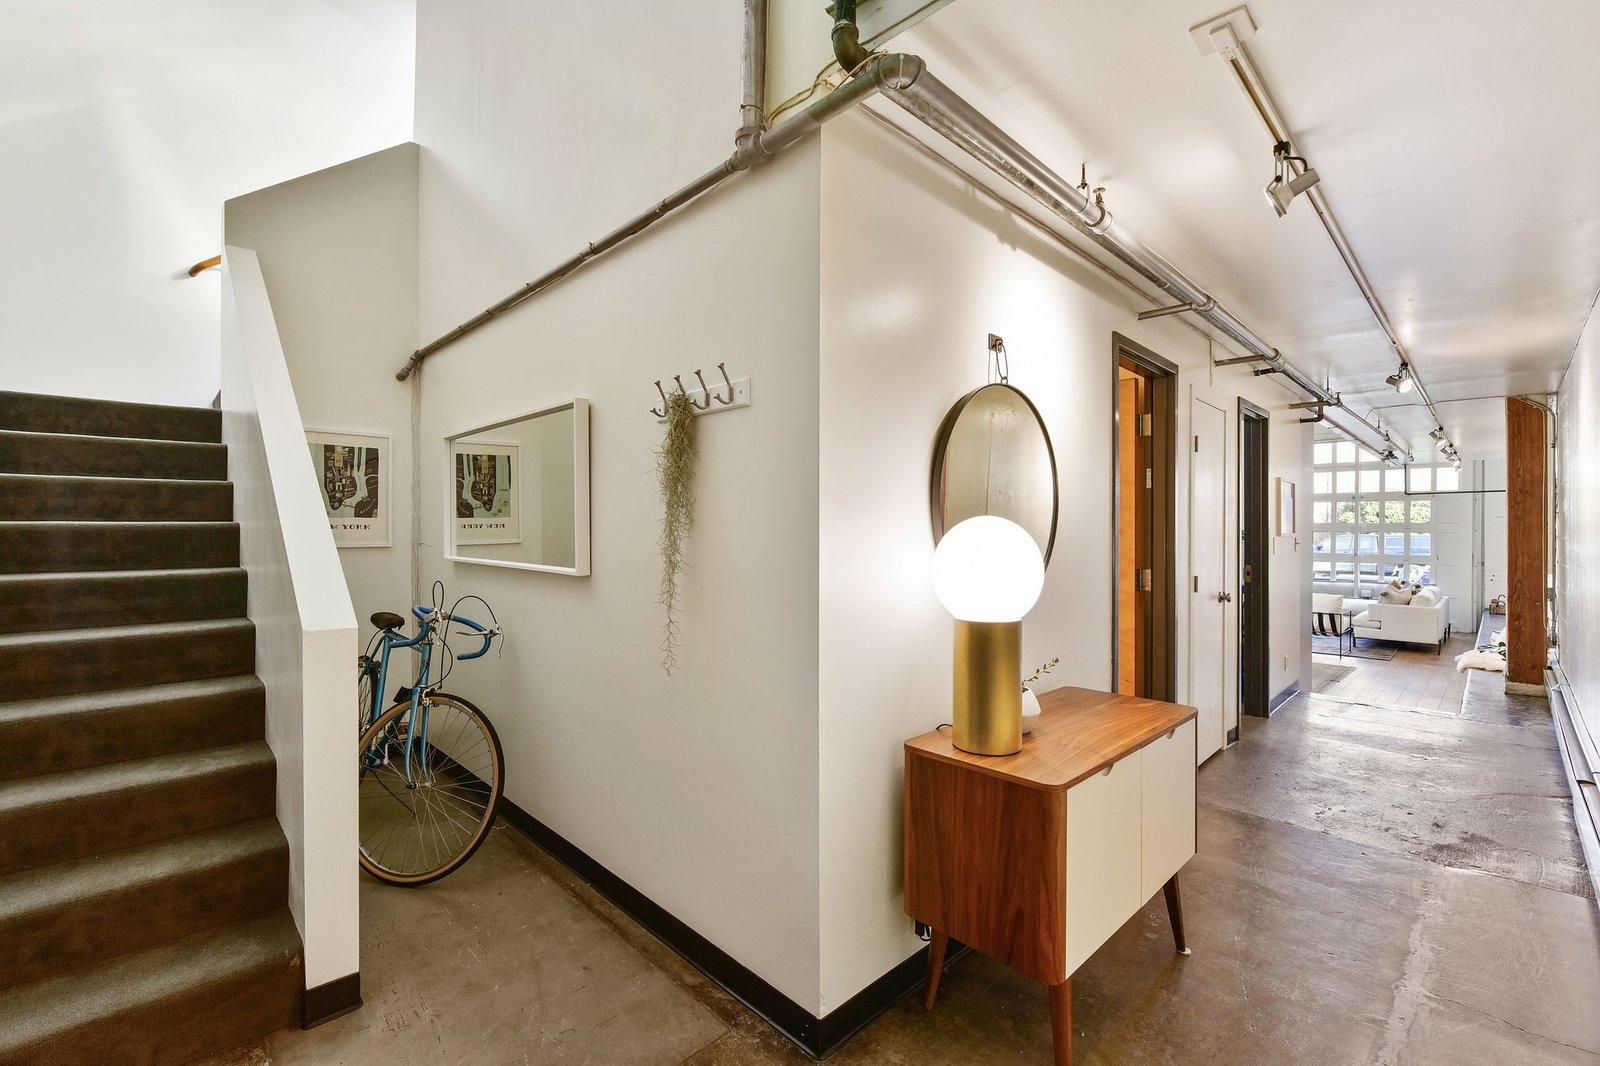 An interior bedroom and a half-bath are located down the hall, as is the home's second entrance. A nook beside the staircase offers space to store bikes.  Photo 5 of 9 in A Converted Warehouse Loft in the San Francisco Bay Area Seeks $950K